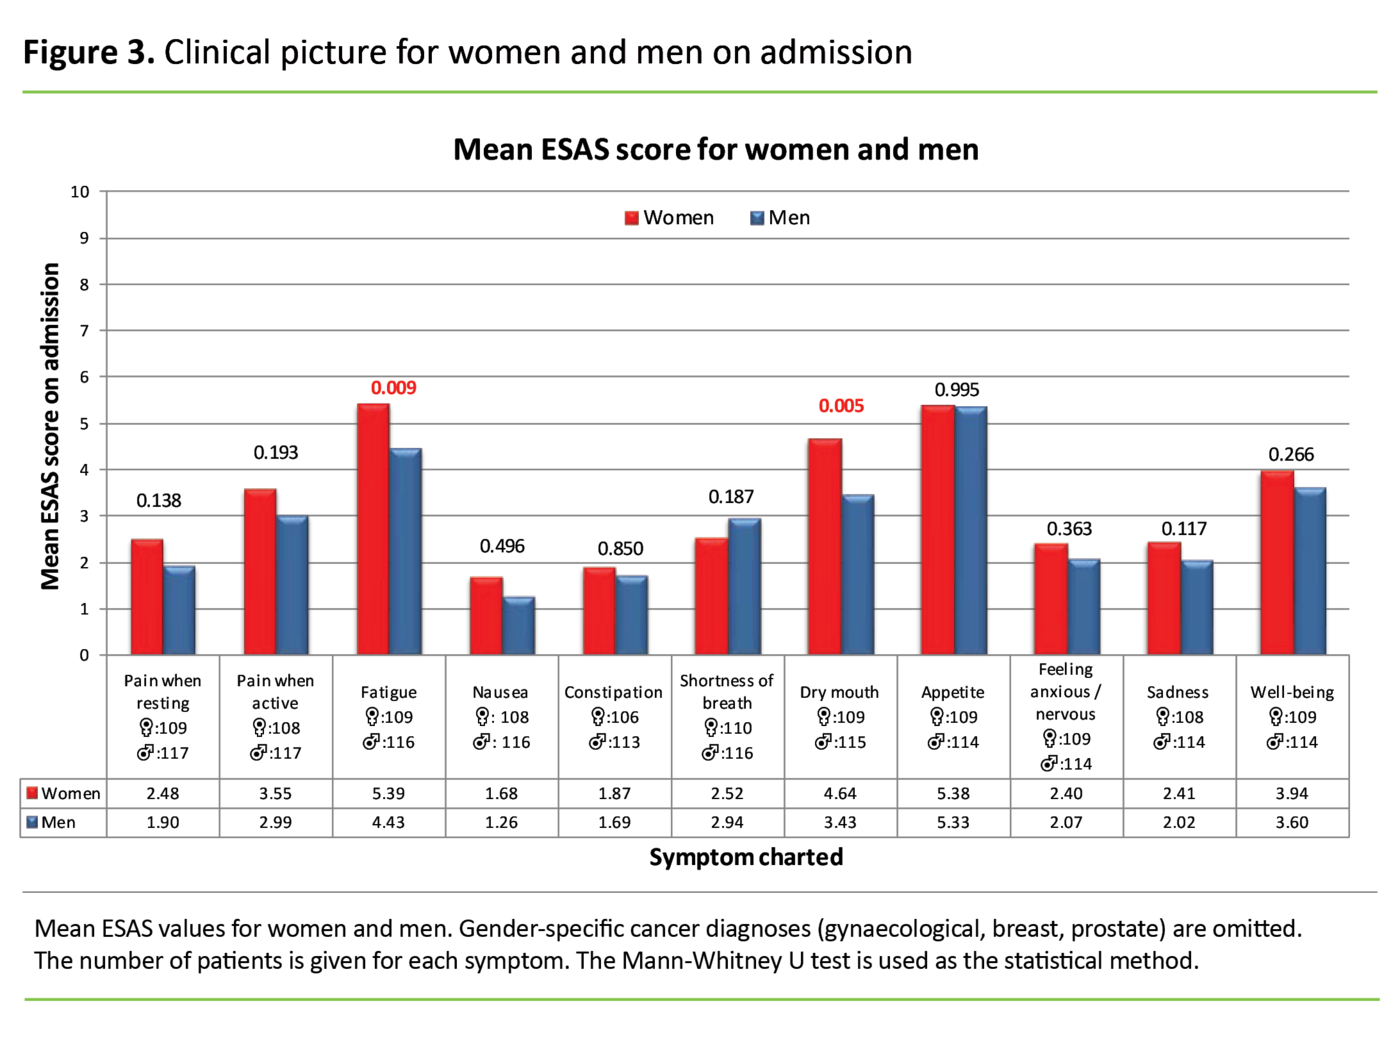 Figure 3. Clinical picture for women and men on admission